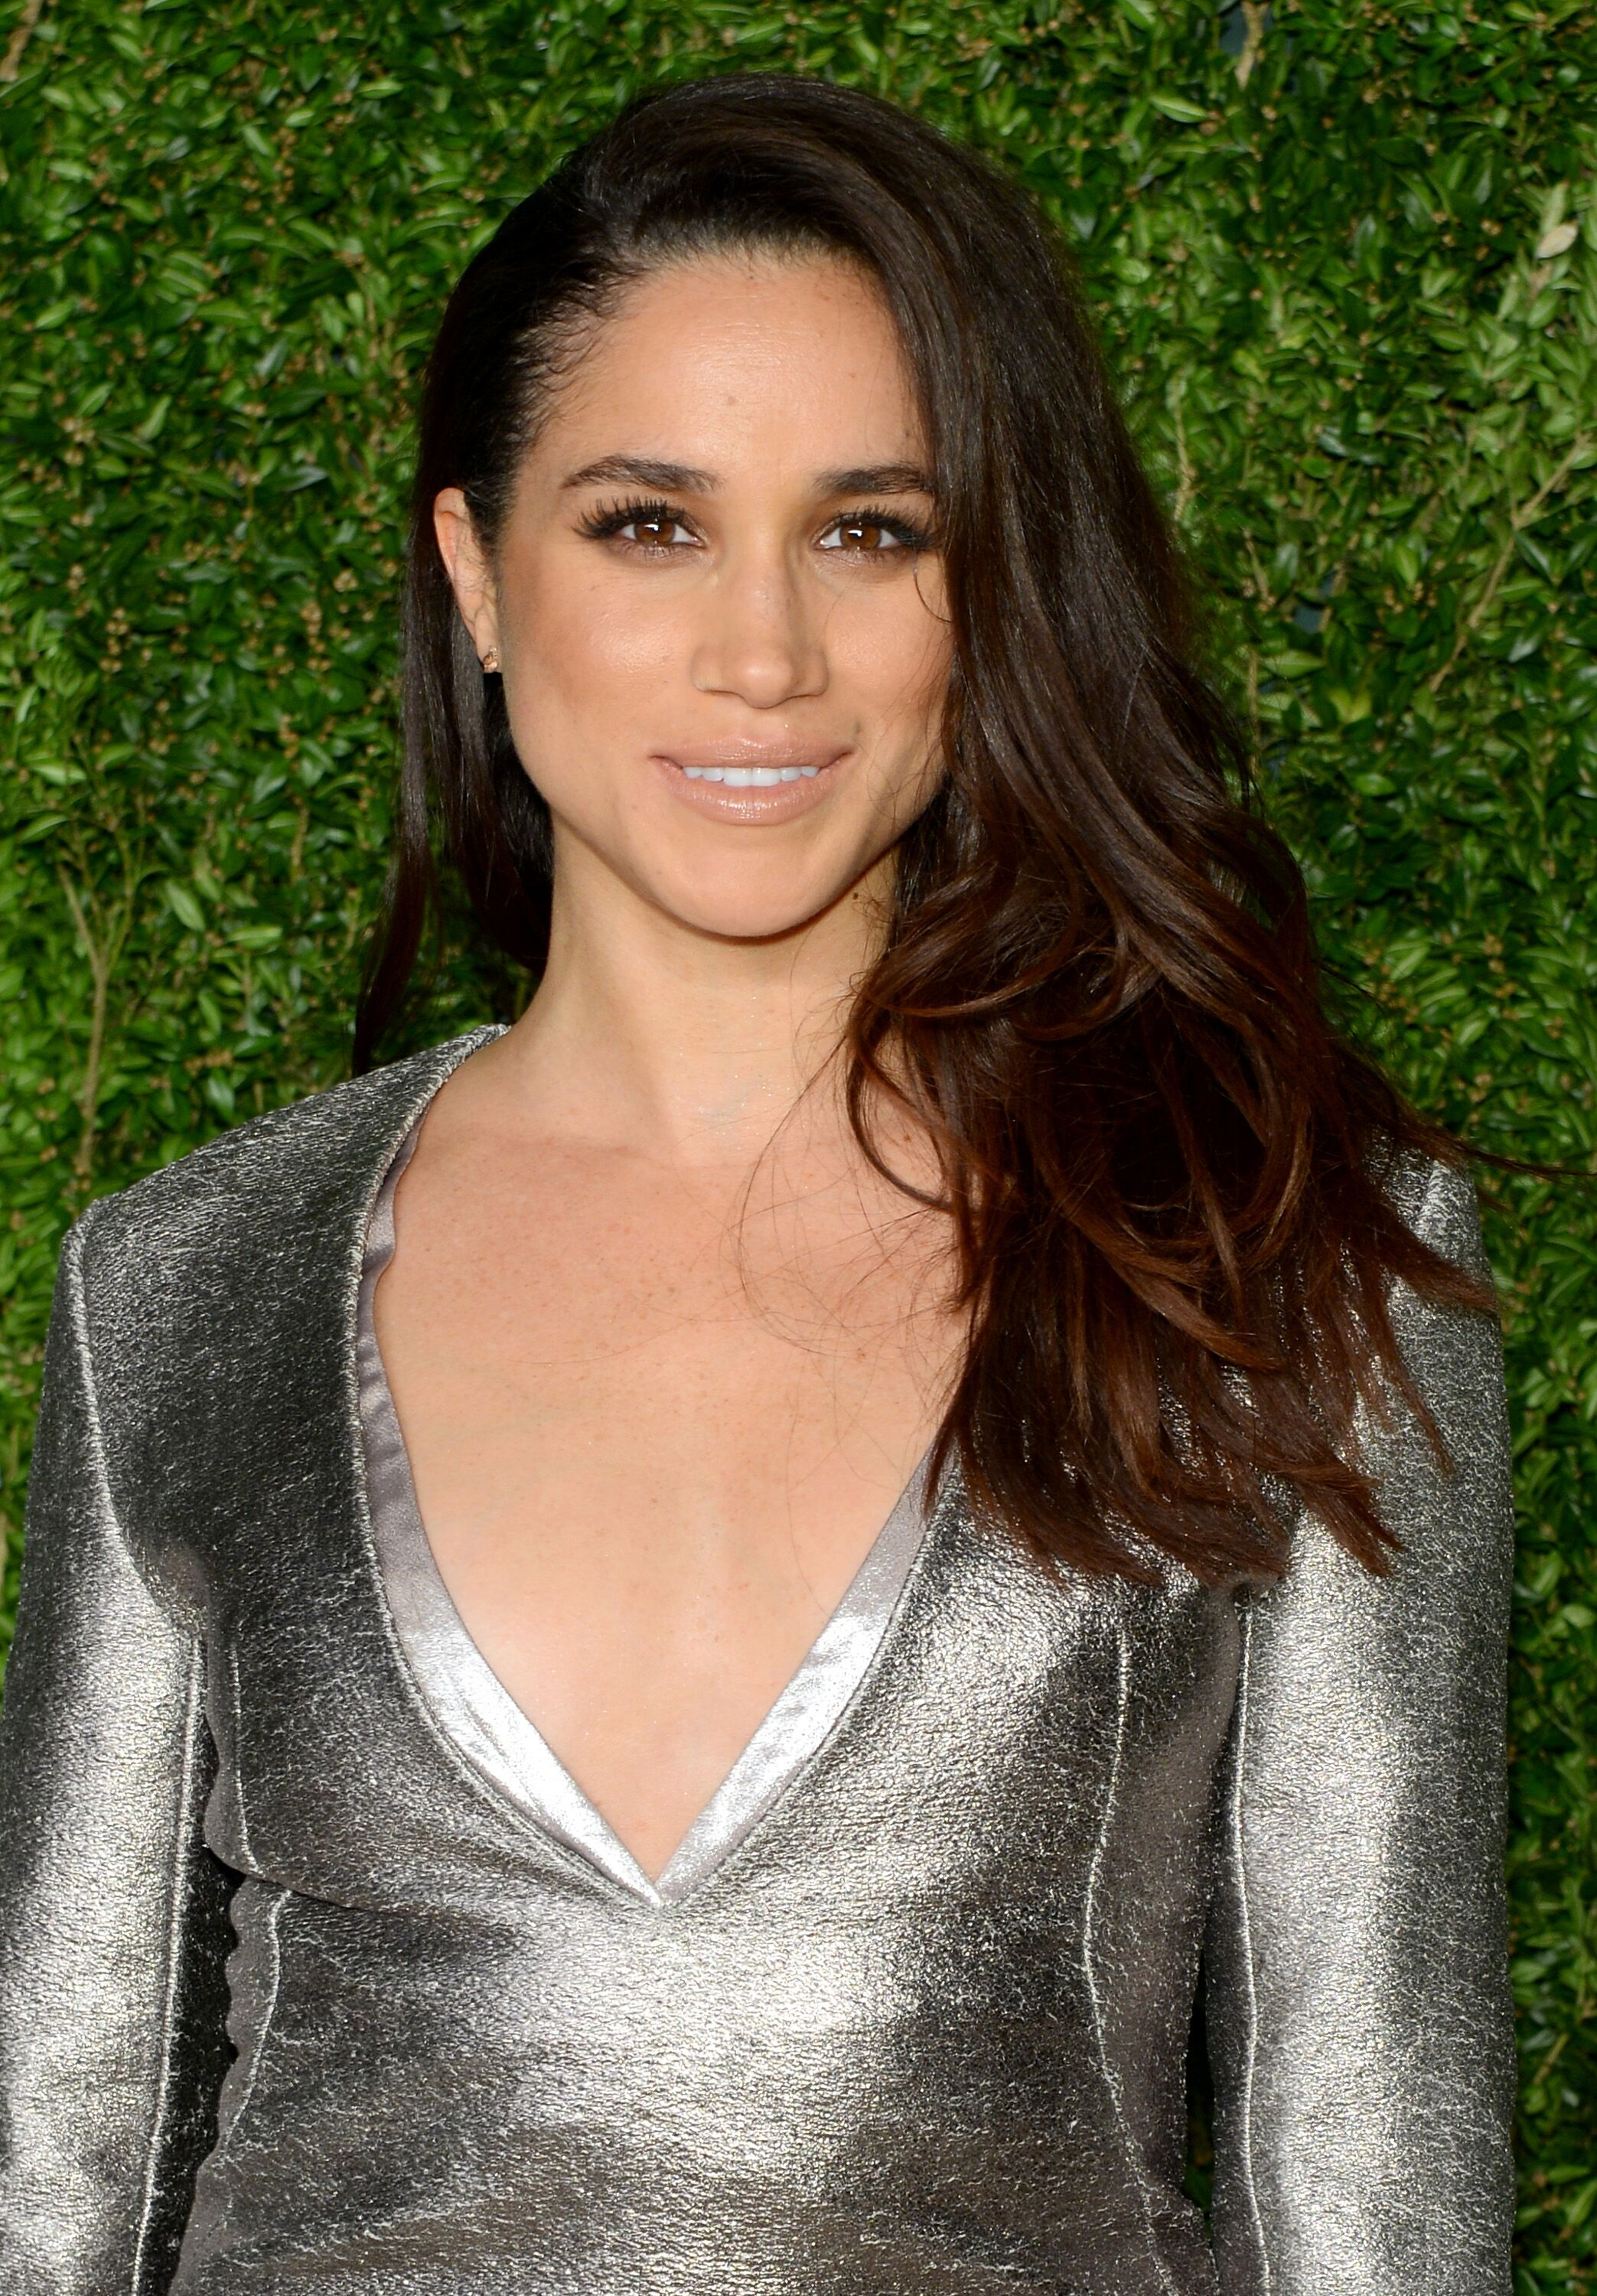 Meghan Markle attends the 12th annual CFDA/Vogue Fashion Fund Awards at Spring Studios on November 2, 2015 in New York City. | Source: Getty Images